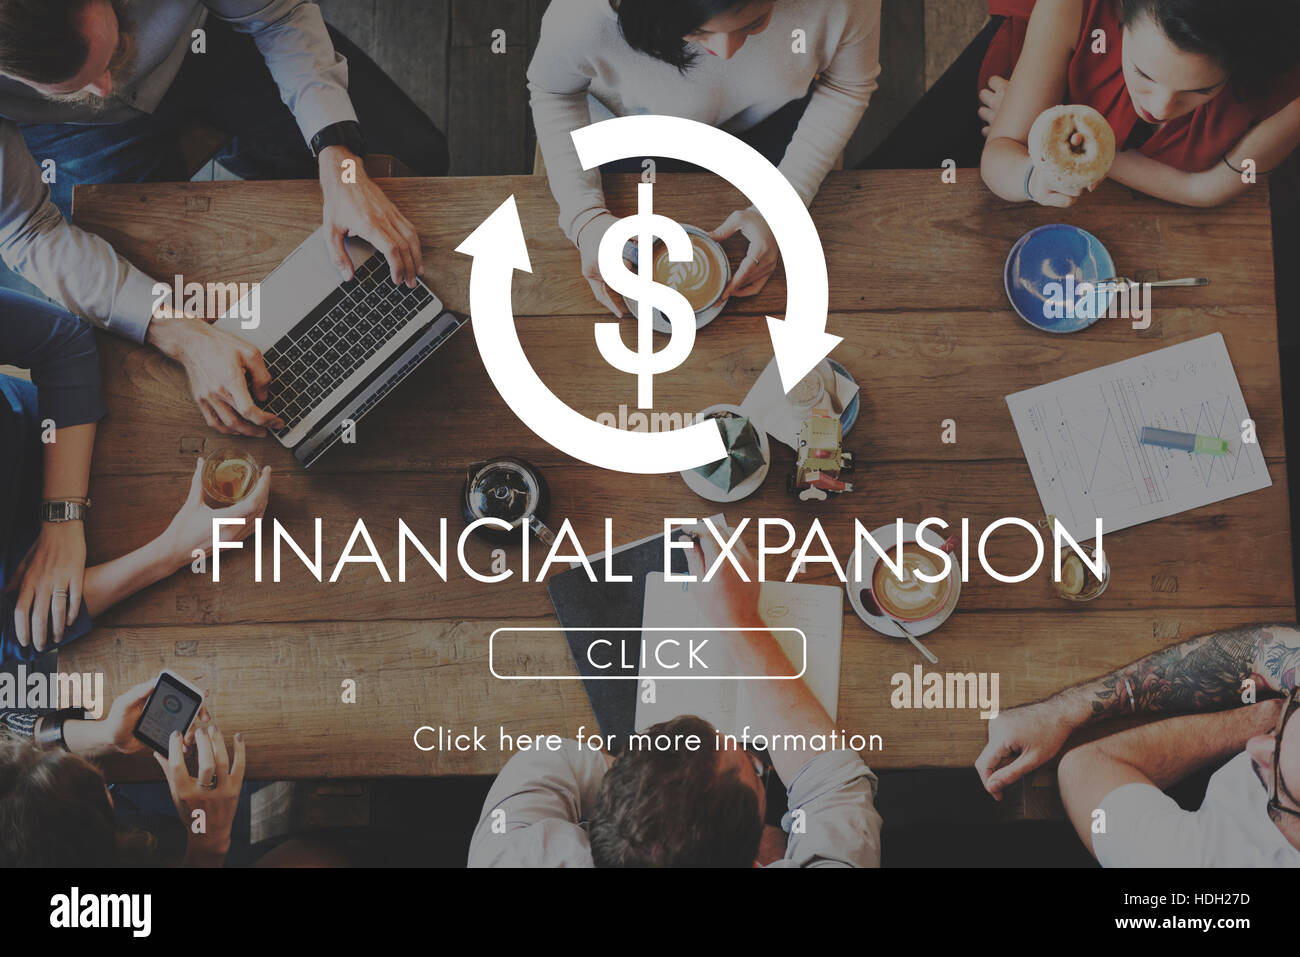 Financial Expansion Business Cycle Economy Concept - Stock Image